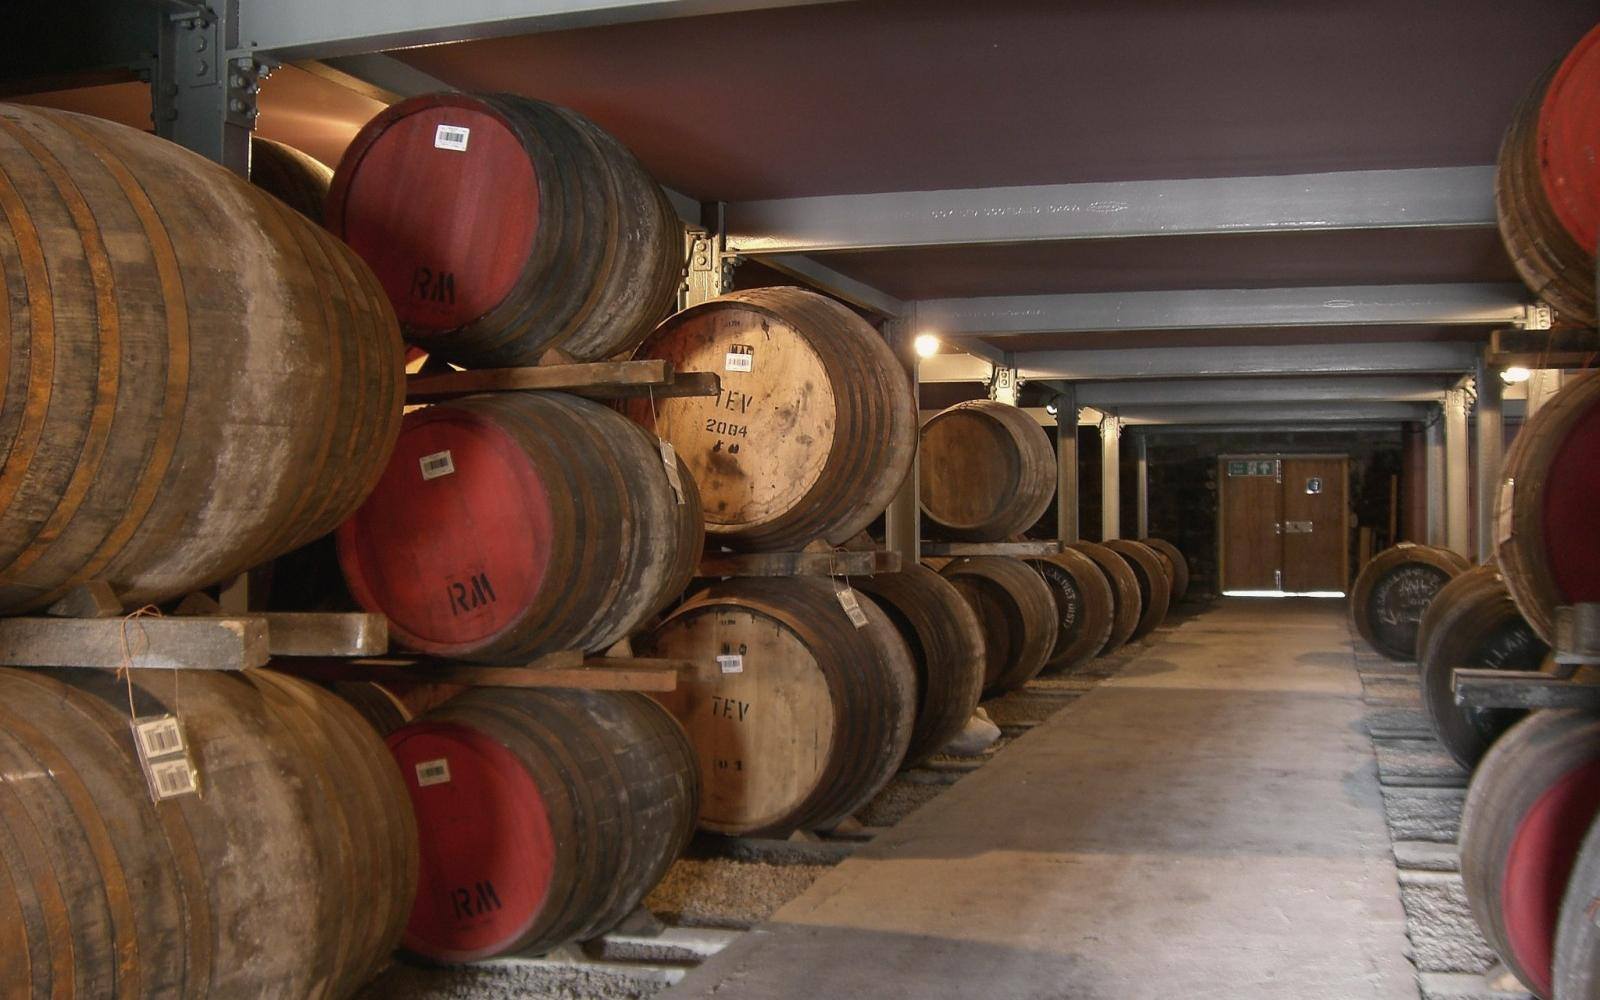 Whisky barrels in Craigellachie at the Macallan Distillery - Photo: Wikicommons / Christian